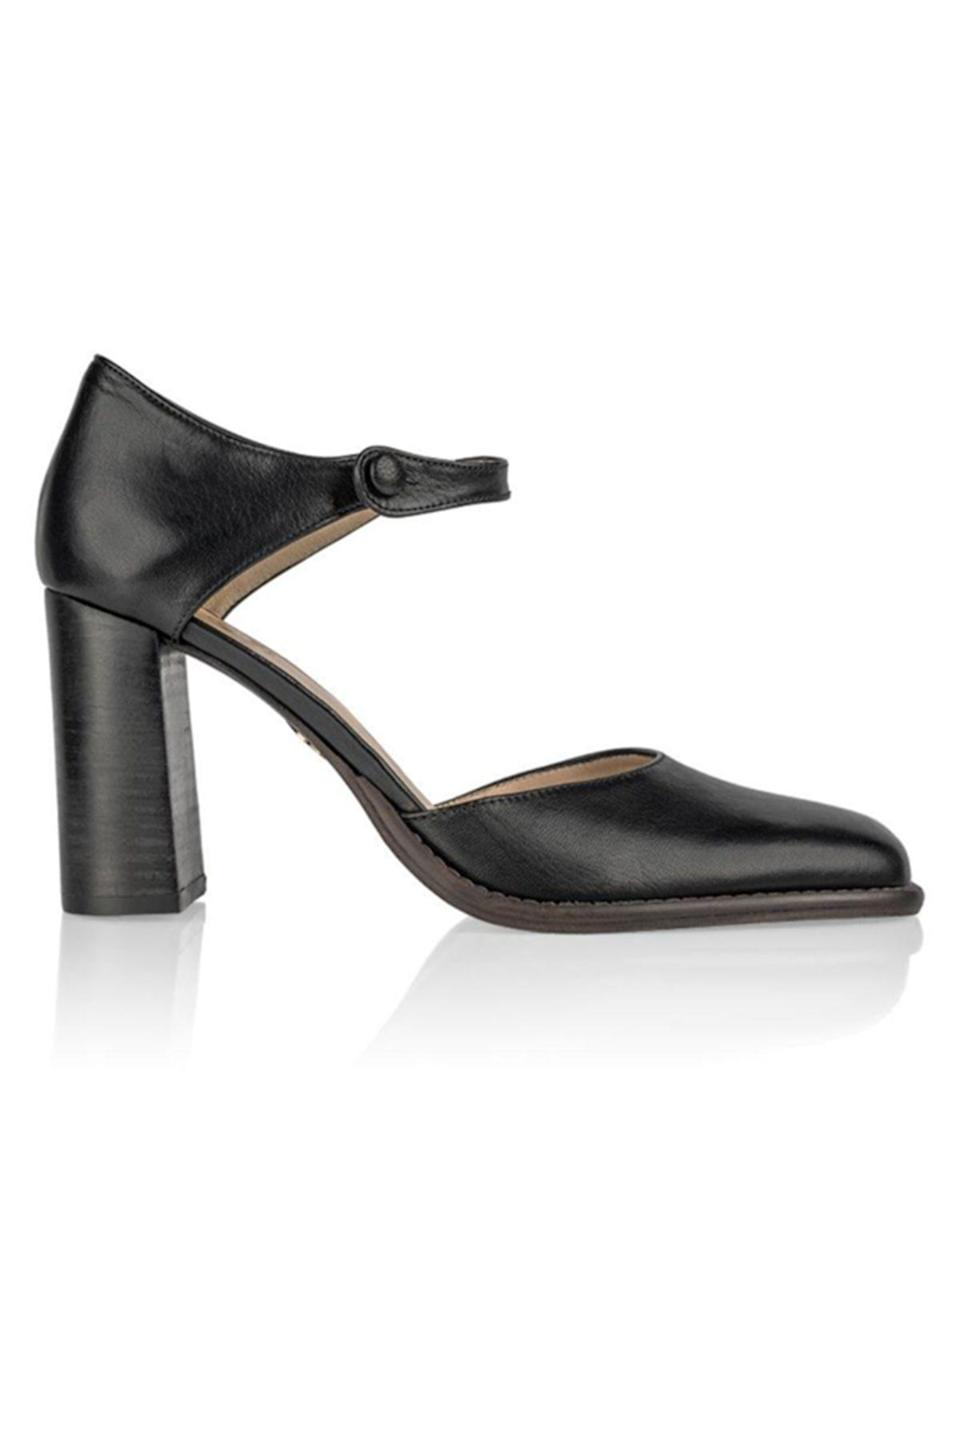 """<p><strong>Brother Vellies</strong></p><p>brothervellies.com</p><p><strong>$595.00</strong></p><p><a href=""""https://brothervellies.com/collections/all/products/lauryn-mary-jane-in-midnight"""" rel=""""nofollow noopener"""" target=""""_blank"""" data-ylk=""""slk:Shop Now"""" class=""""link rapid-noclick-resp"""">Shop Now</a></p><p>Brother Vellies shoes are handmade by artisans around the globe—and guaranteed to become your new favorite accessory.</p>"""